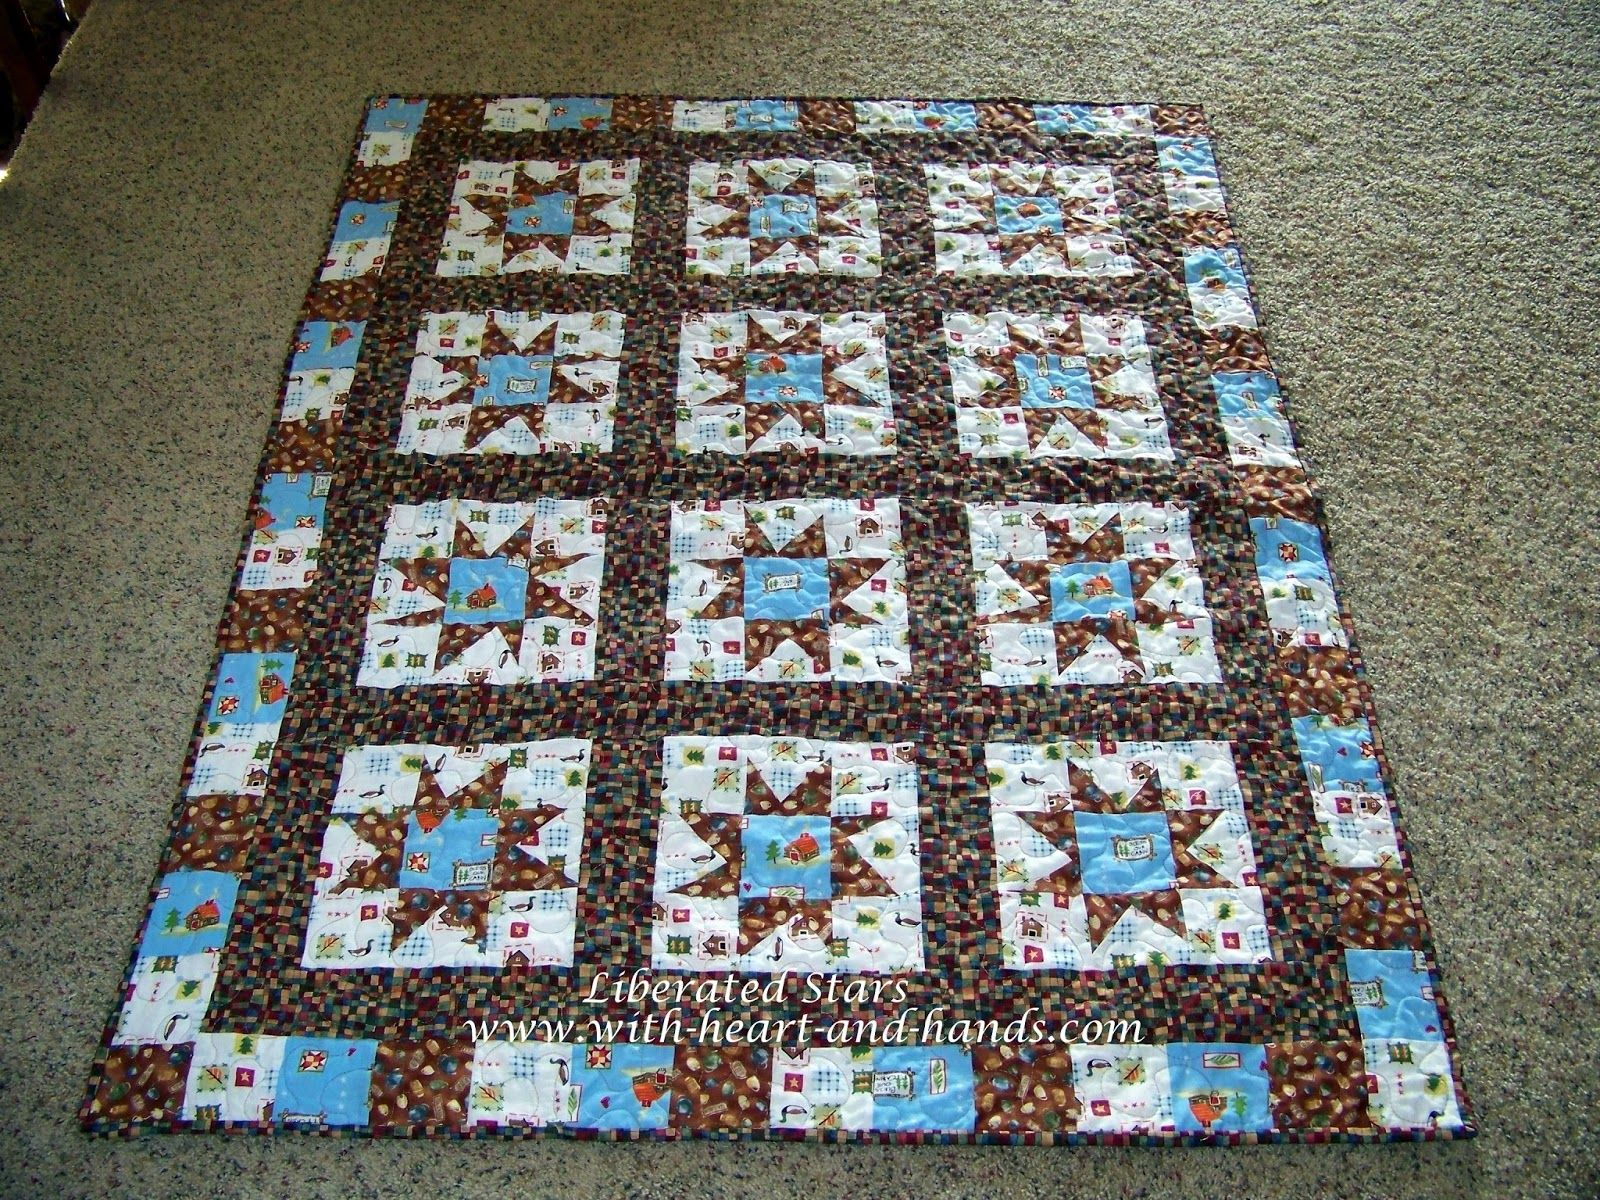 Michele Bilyeu shares her quilting and crafting journey from Alaska to Oregon with thousands of free patterns and tutorials.